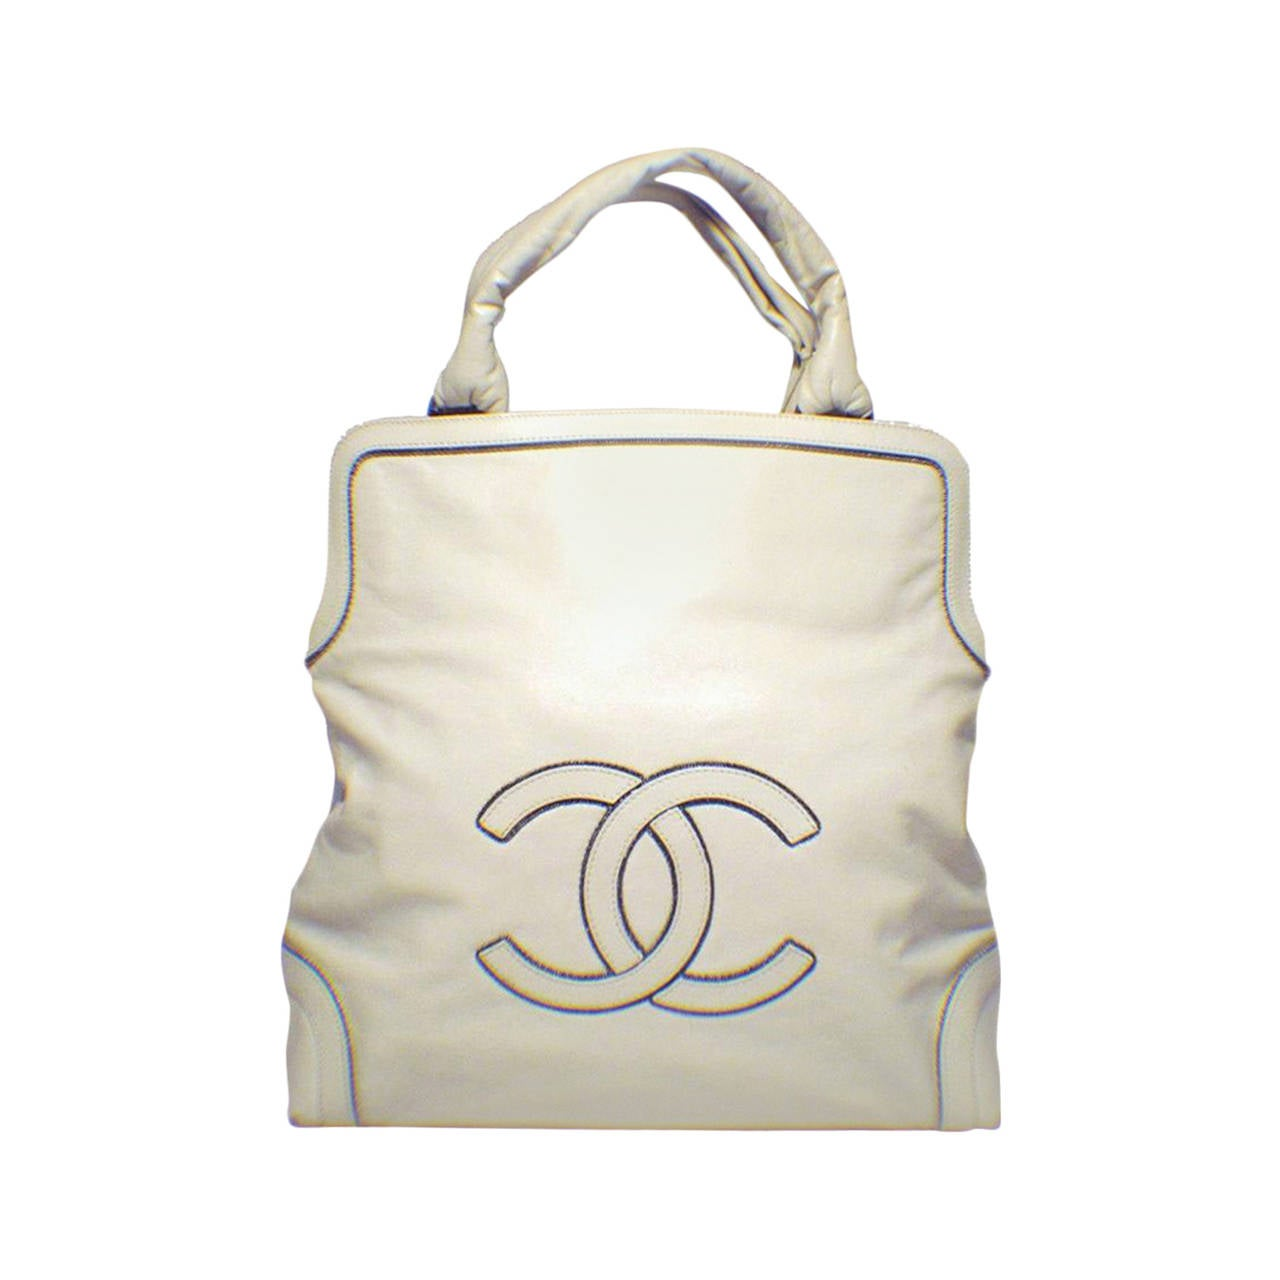 Chanel Cream Leather CC Chain Logo Handbag Tote 1